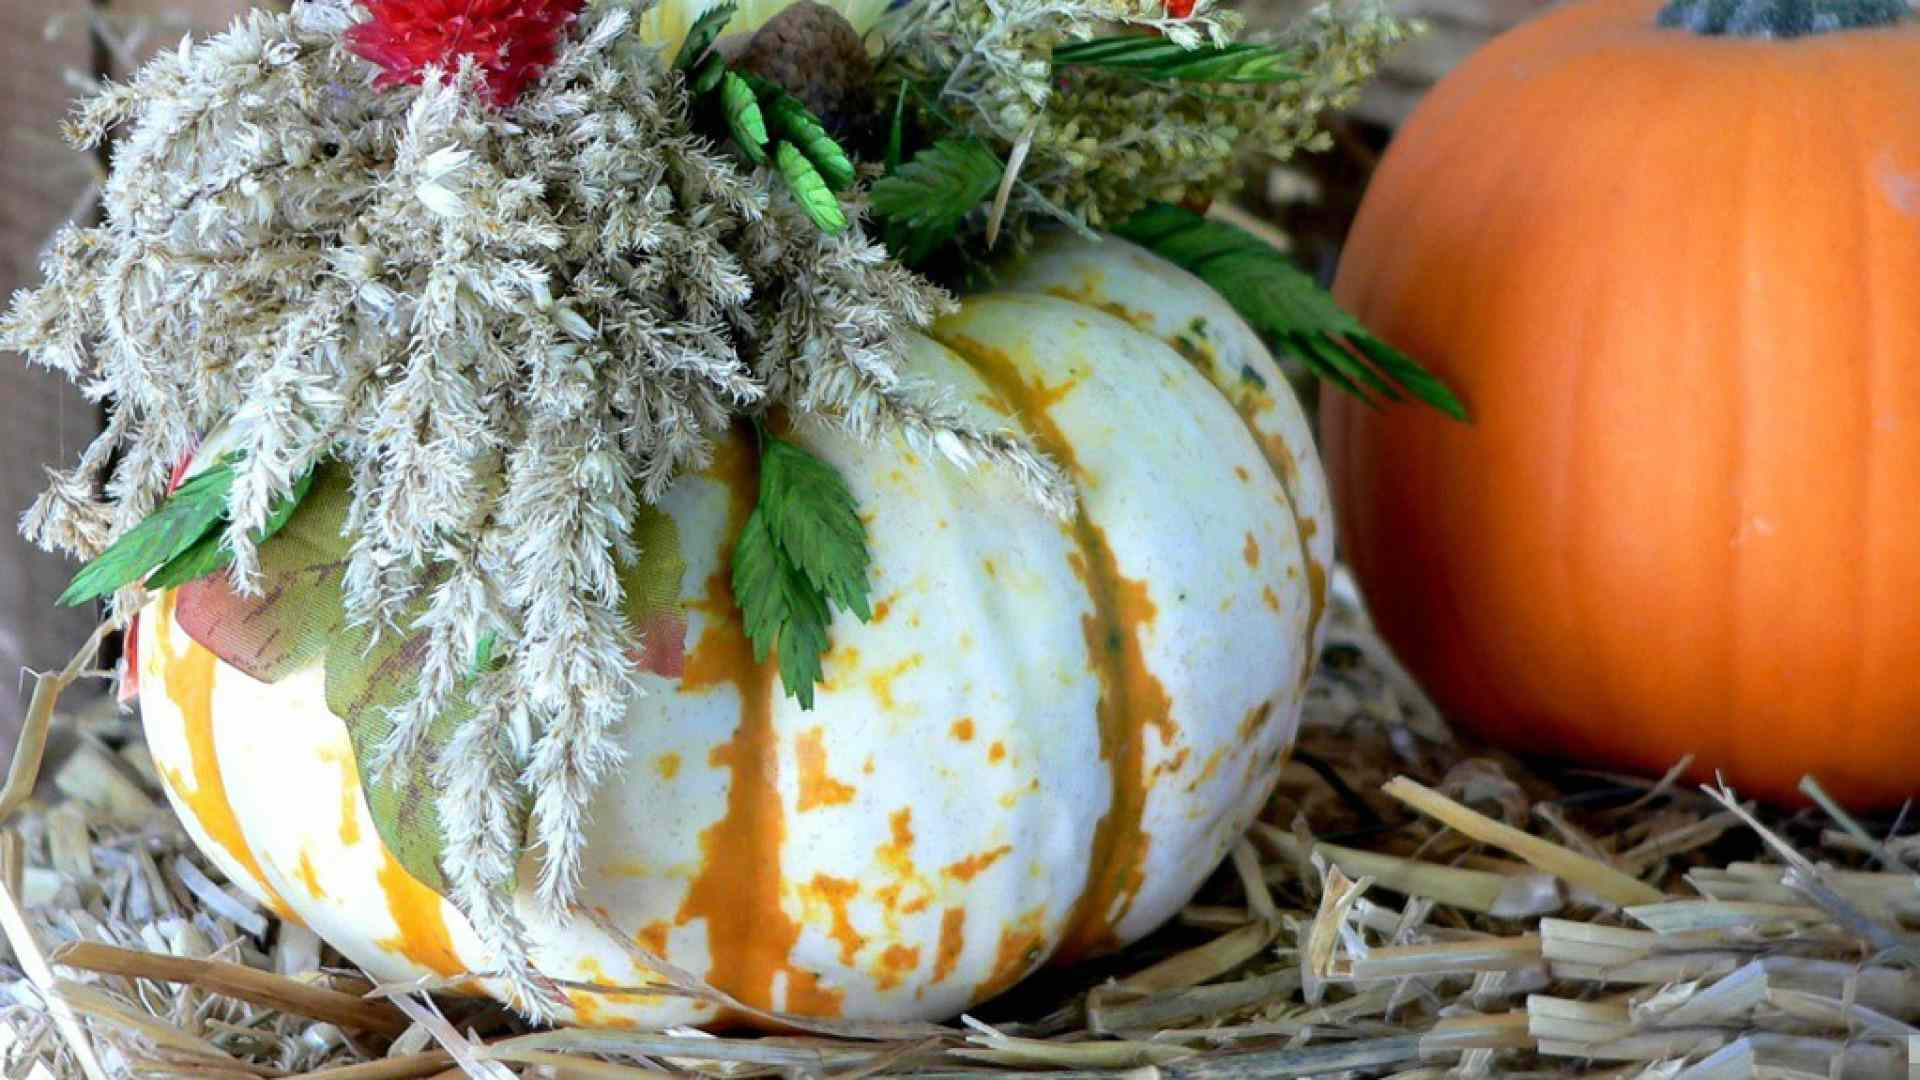 Free autumn wallpaper featuring decorated pumpkins.